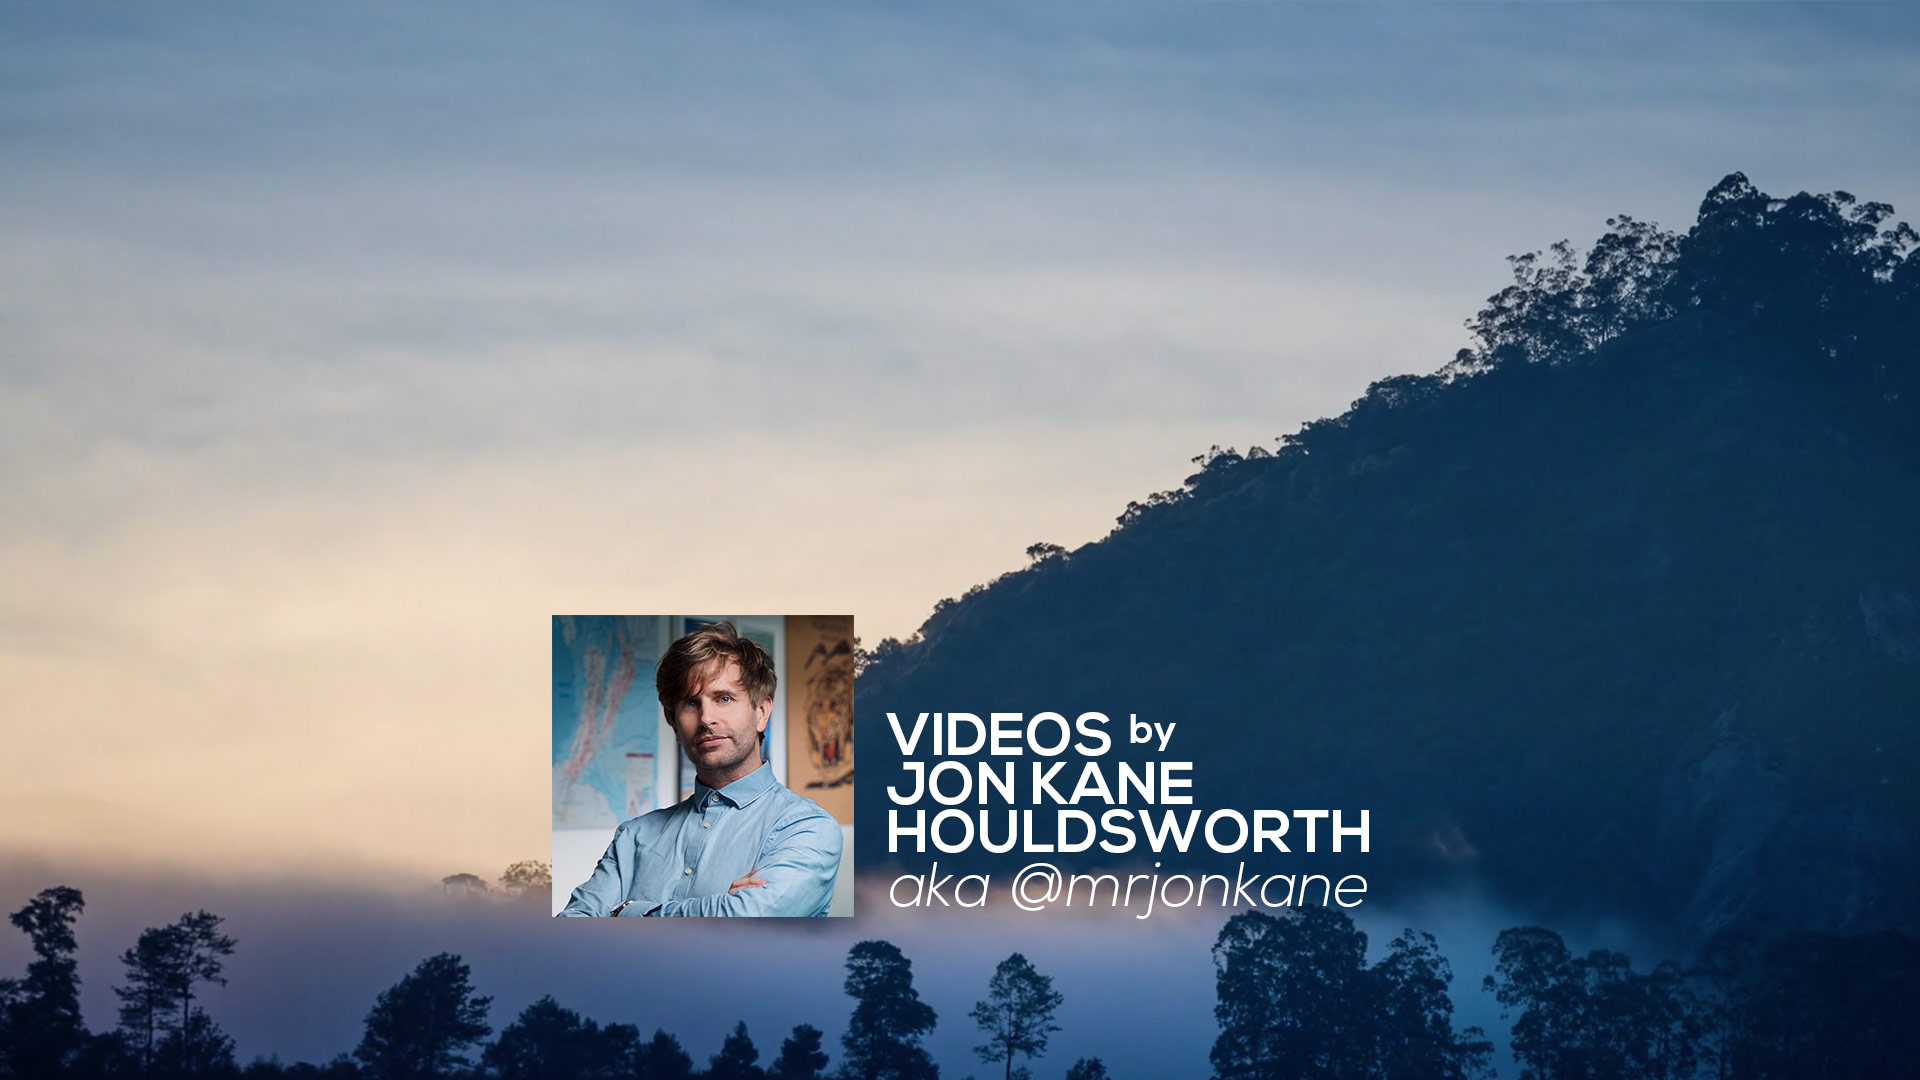 Videos by Jon Kane Houldsworth